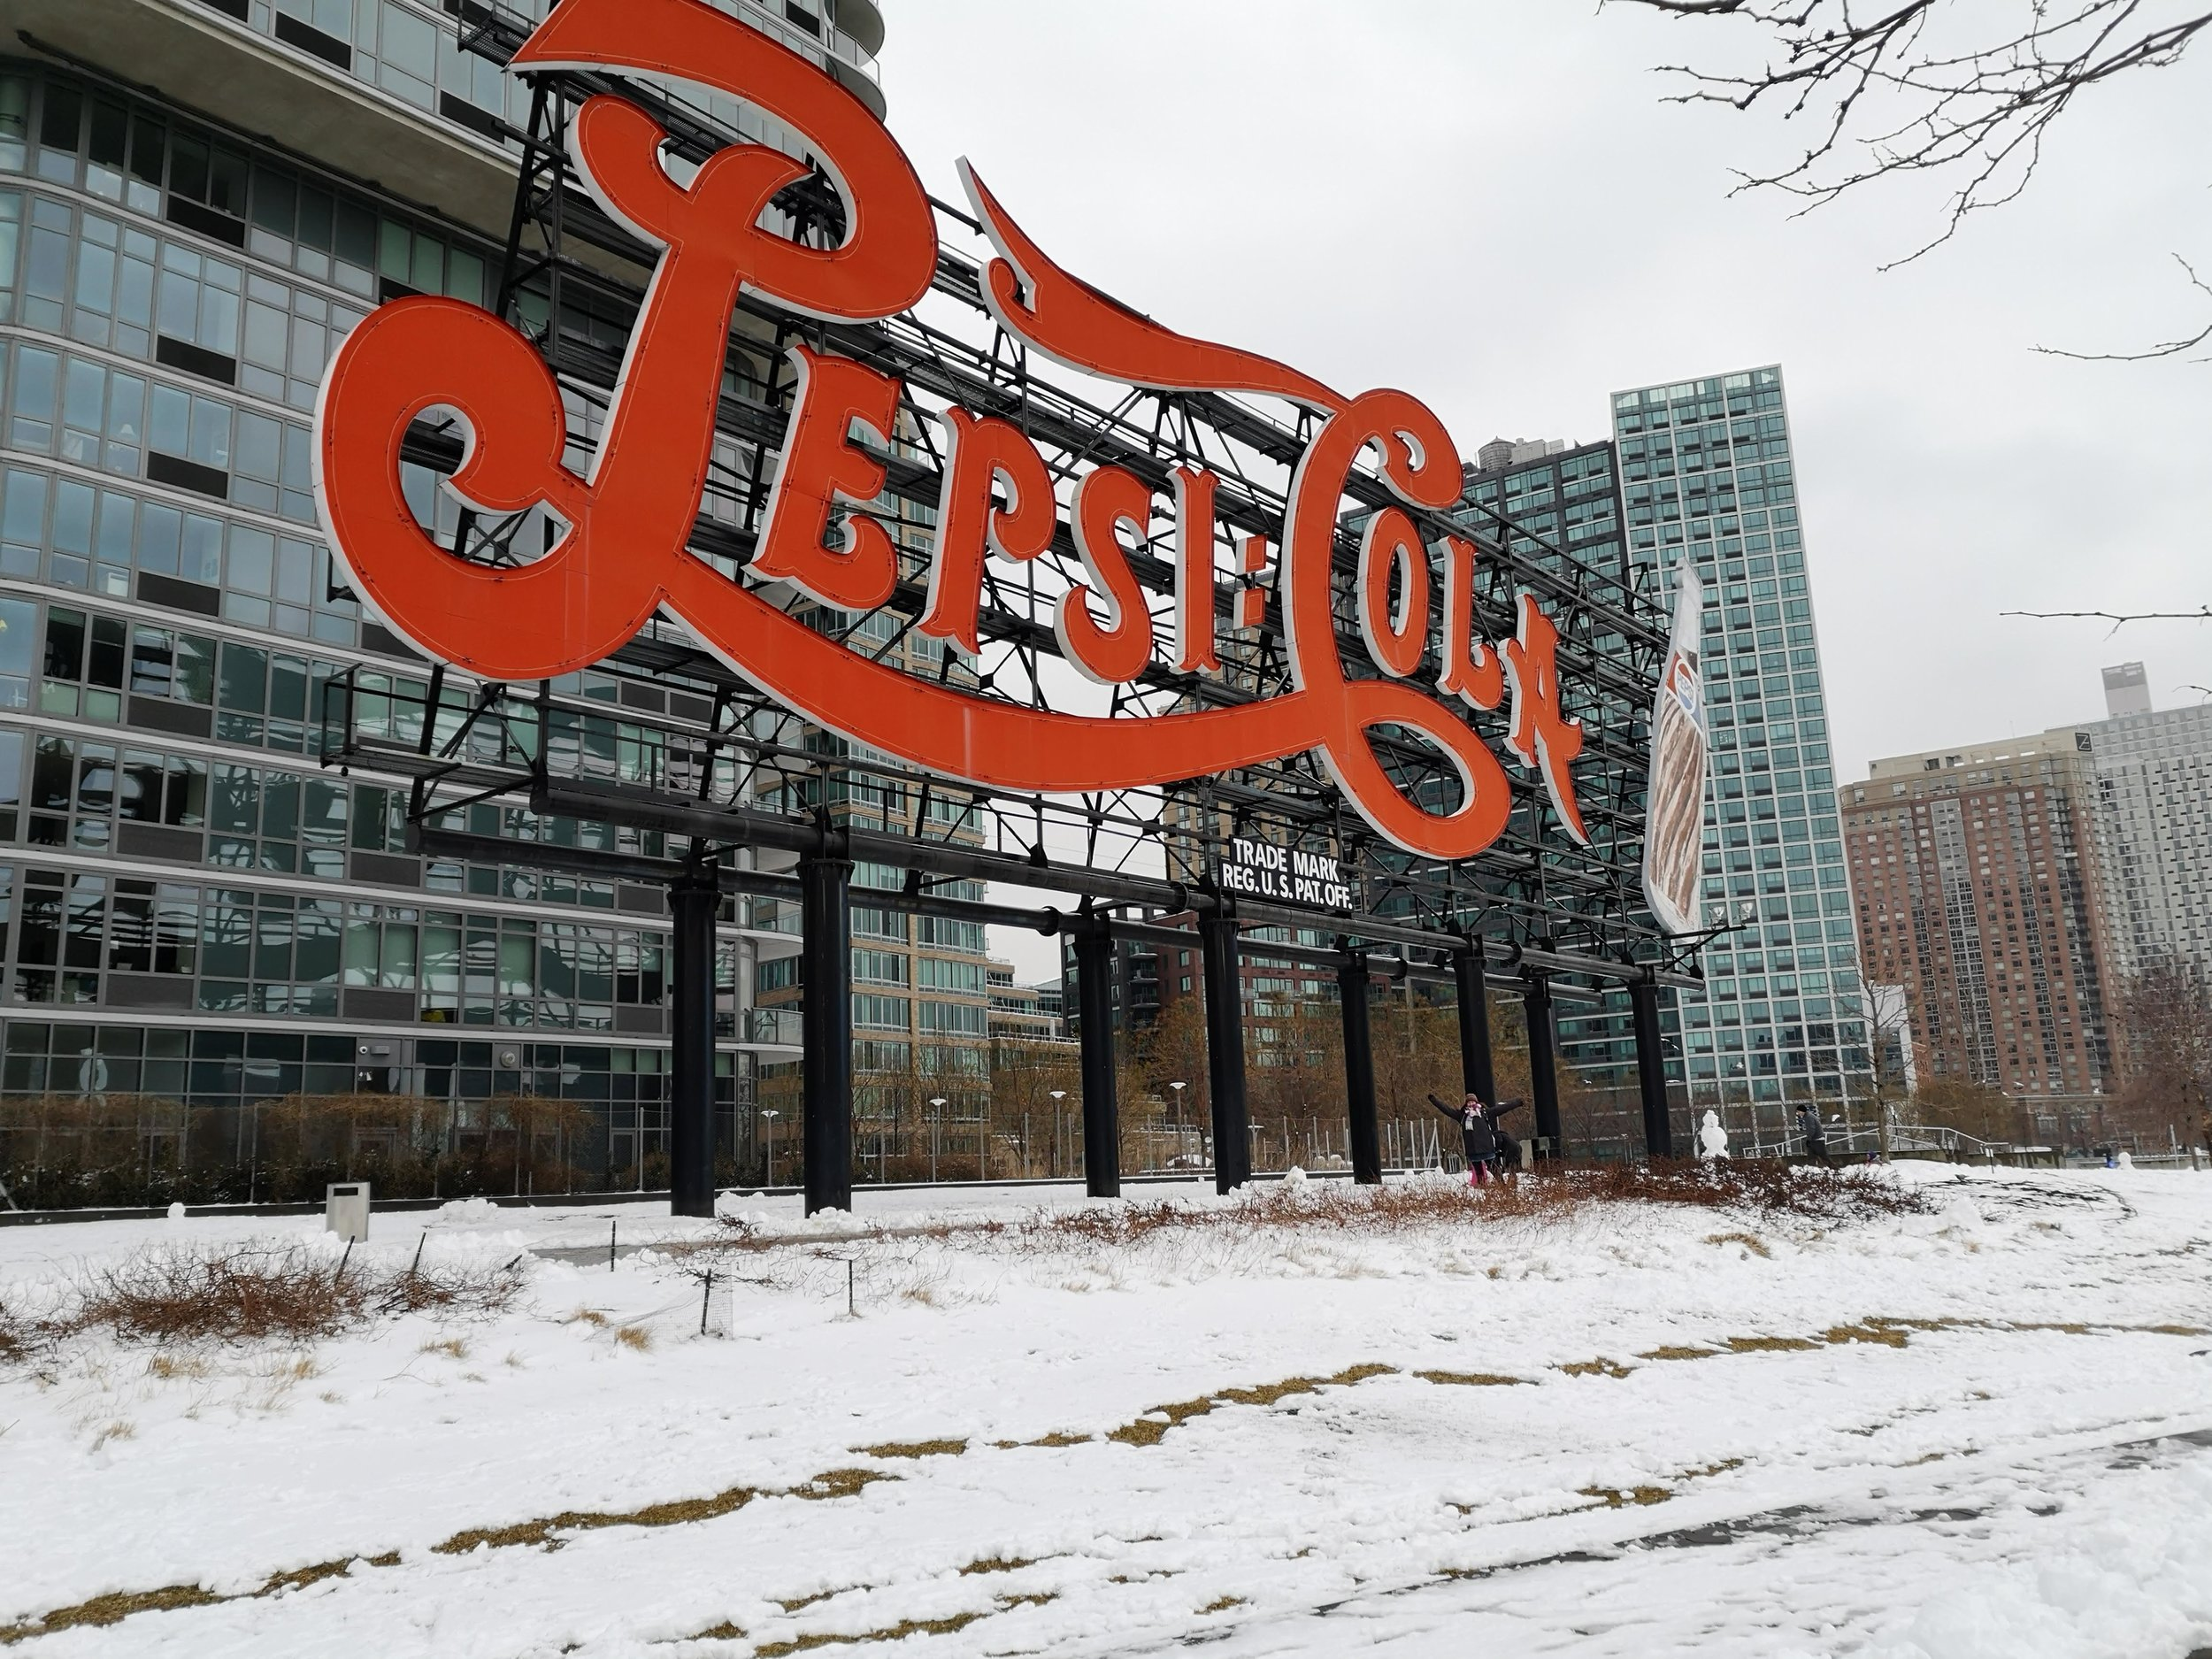 long island city new york  pepsi sign.jpg